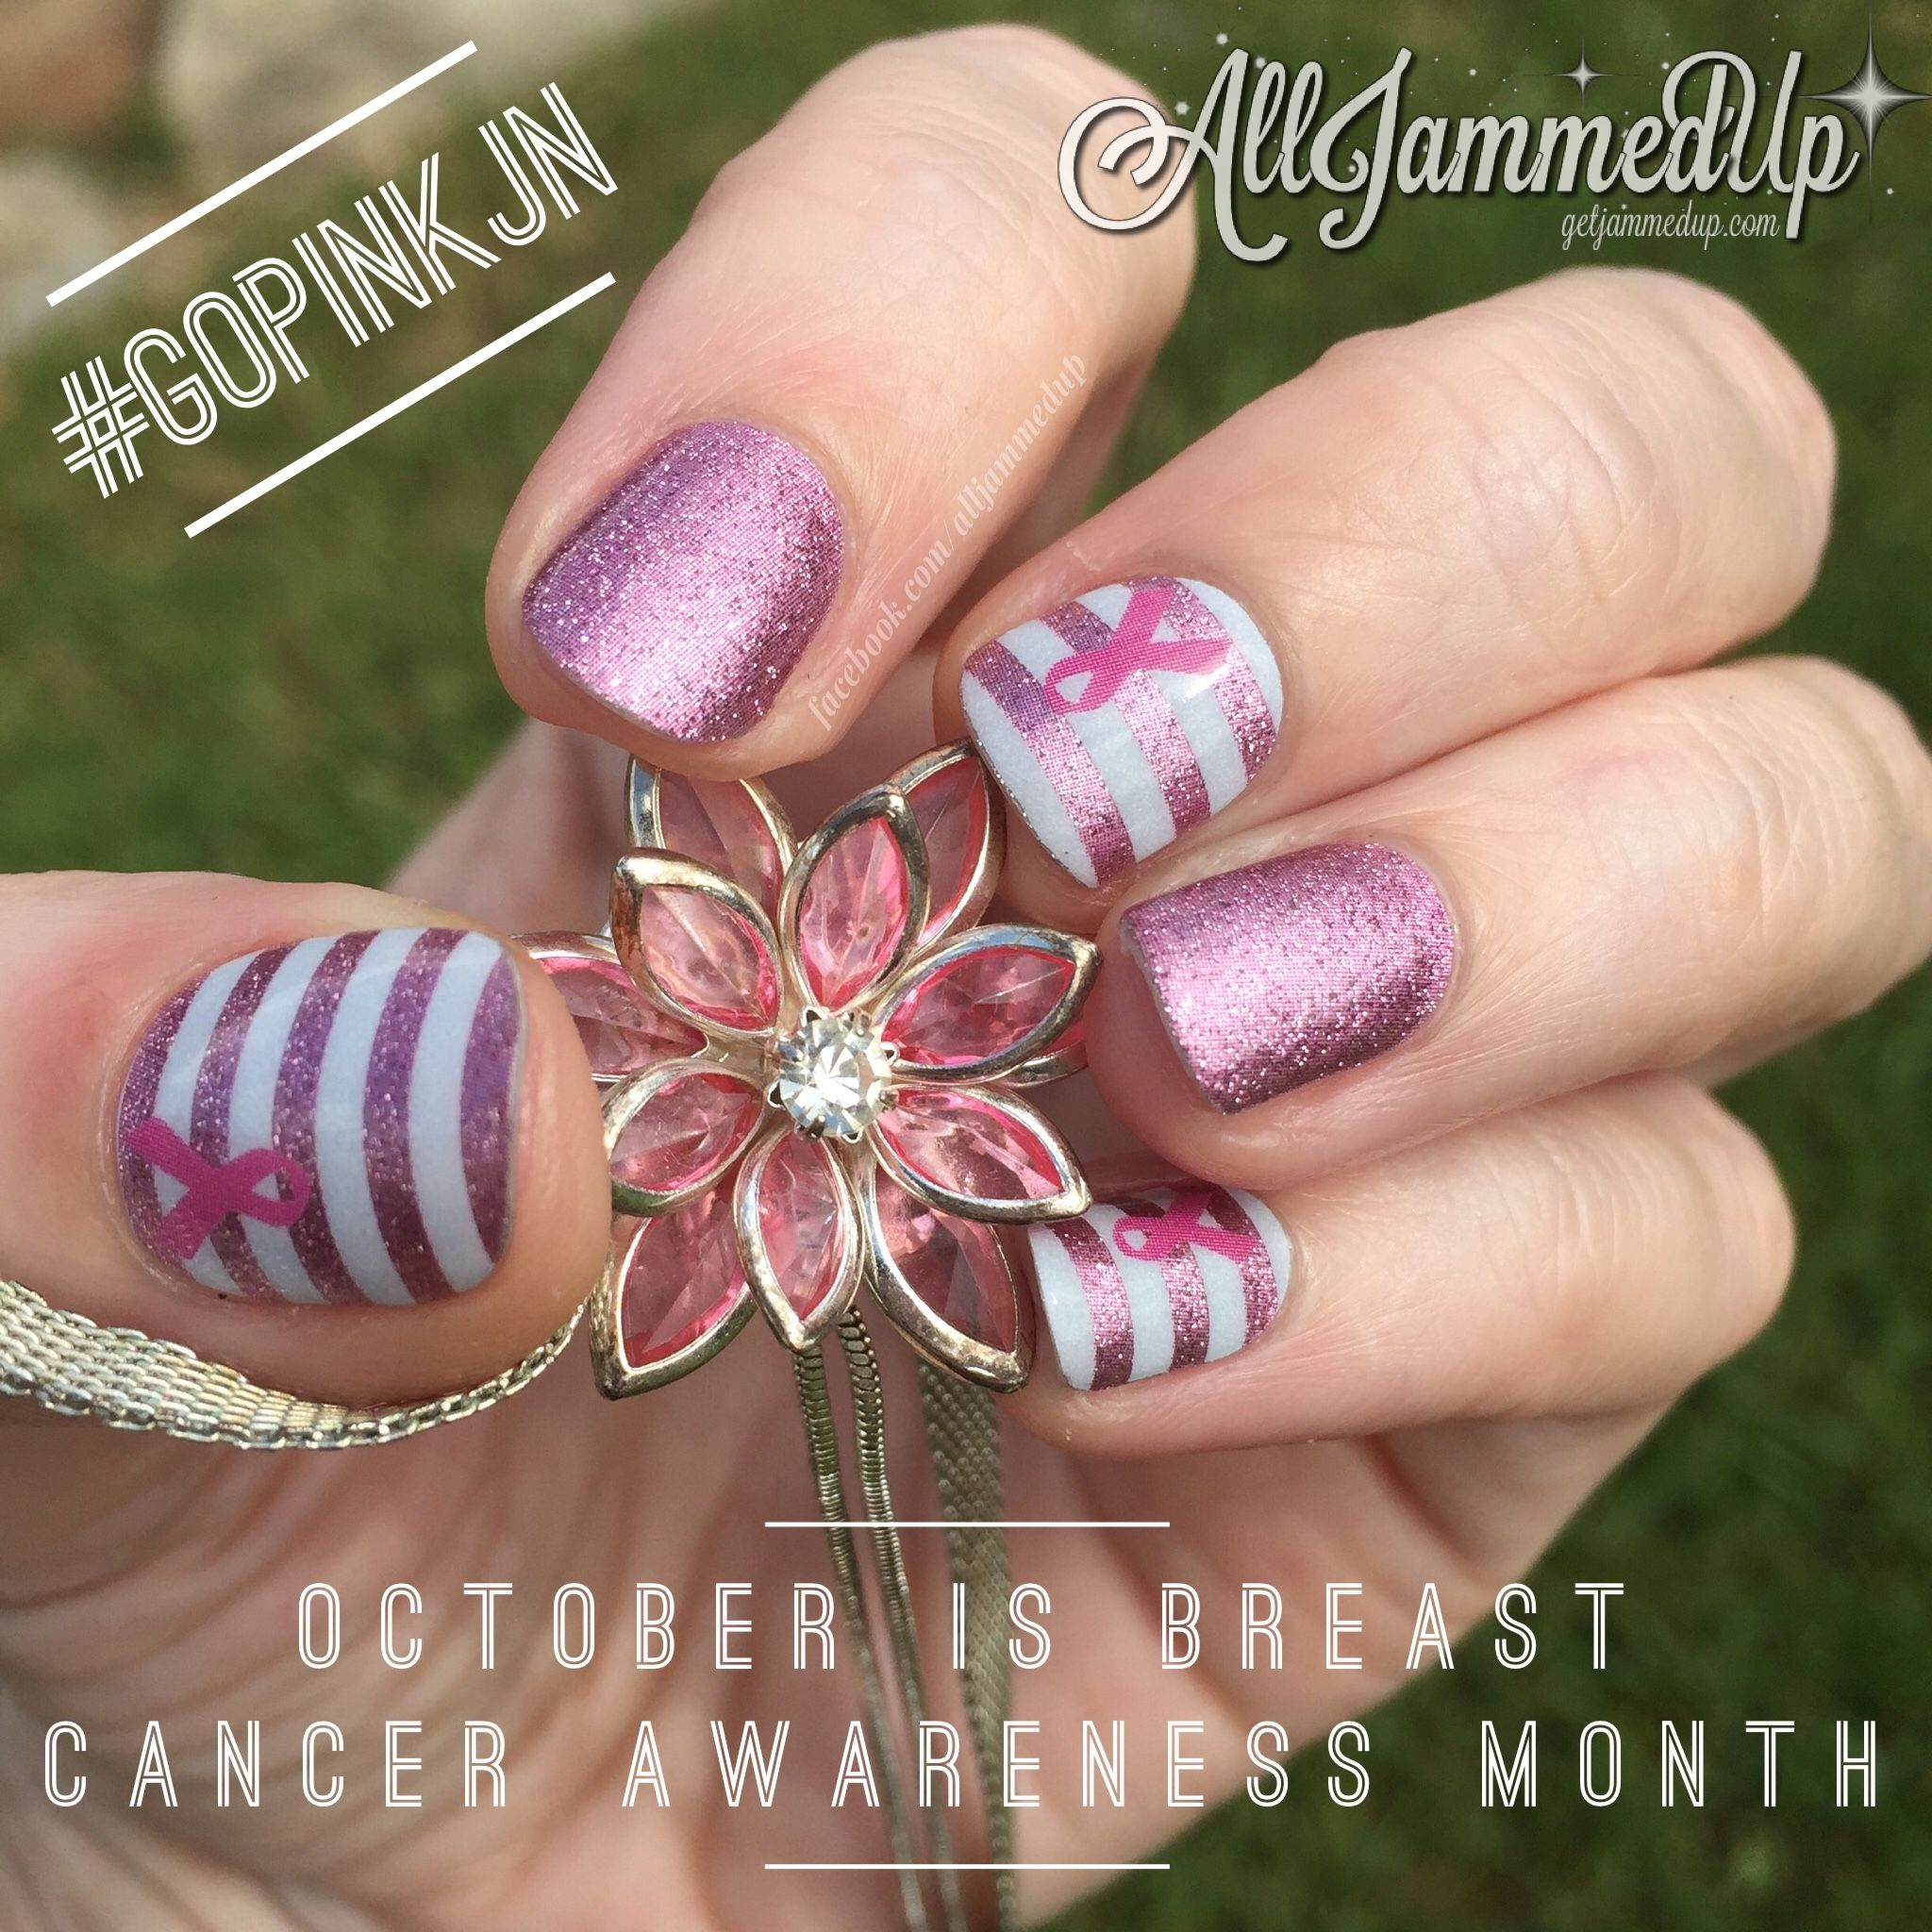 October is Breast Cancer Awareness month. Like me, you probably know someone who has battled it. I'm showing my support! $2 of each purchase of a TellYourStory wrap goes to the American Cancer Society! https://angiebullock.jamberry.com/us/en/shop/shop/for/nail-wraps?collection=collection://1075